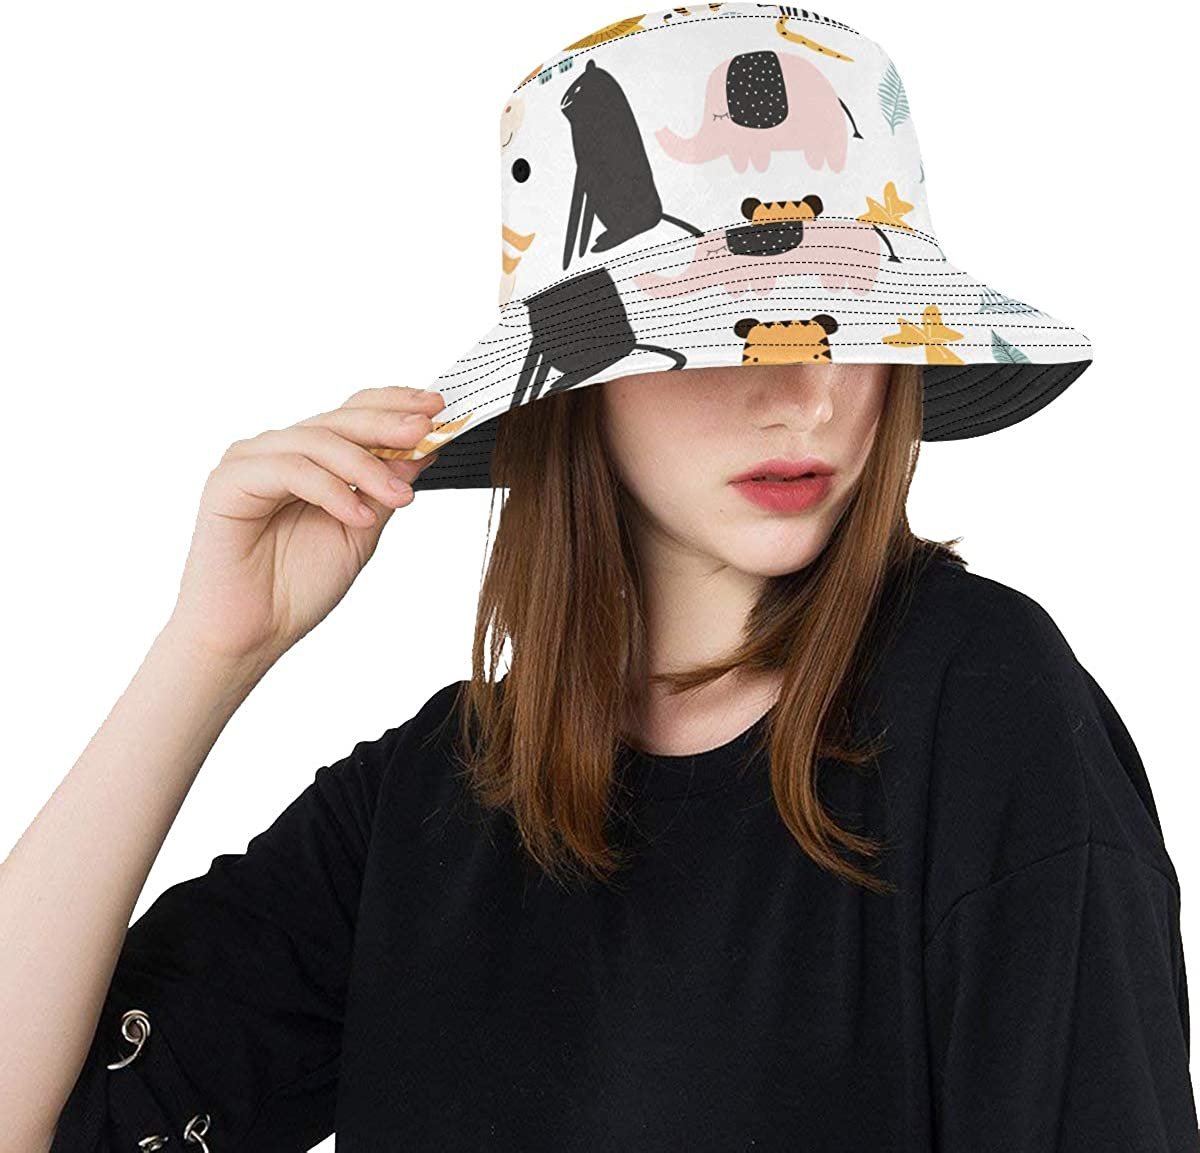 Zoo Animals Collection Cartoon New Summer Unisex Cotton Fashion Fishing Sun Bucket Hats for Kid Teens Women and Men with Customize Top Packable Fisherman Cap for Outdoor Travel